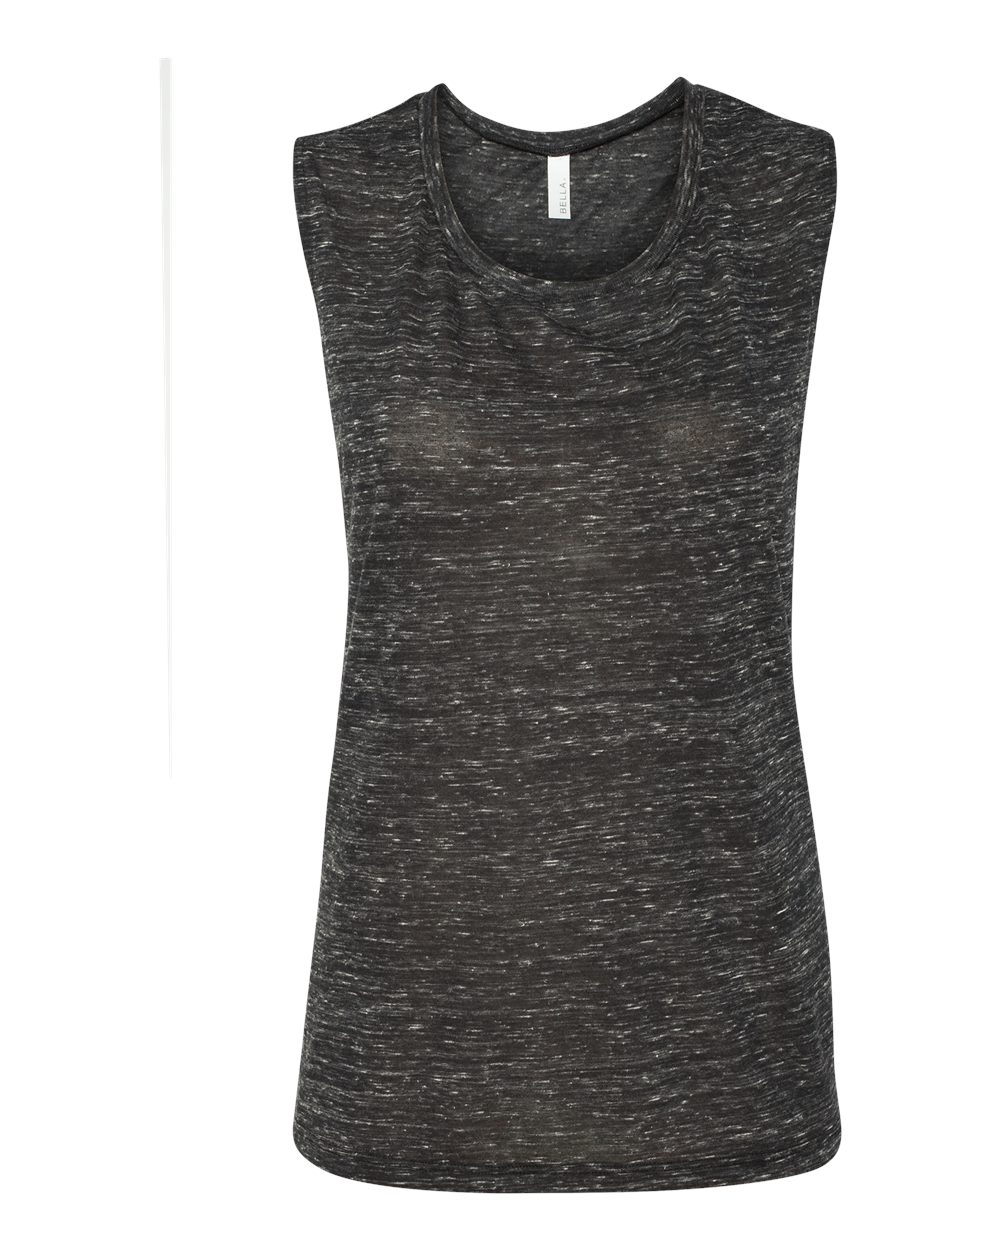 Ultrapress Custom Tank Tops Sleeveless Design Online